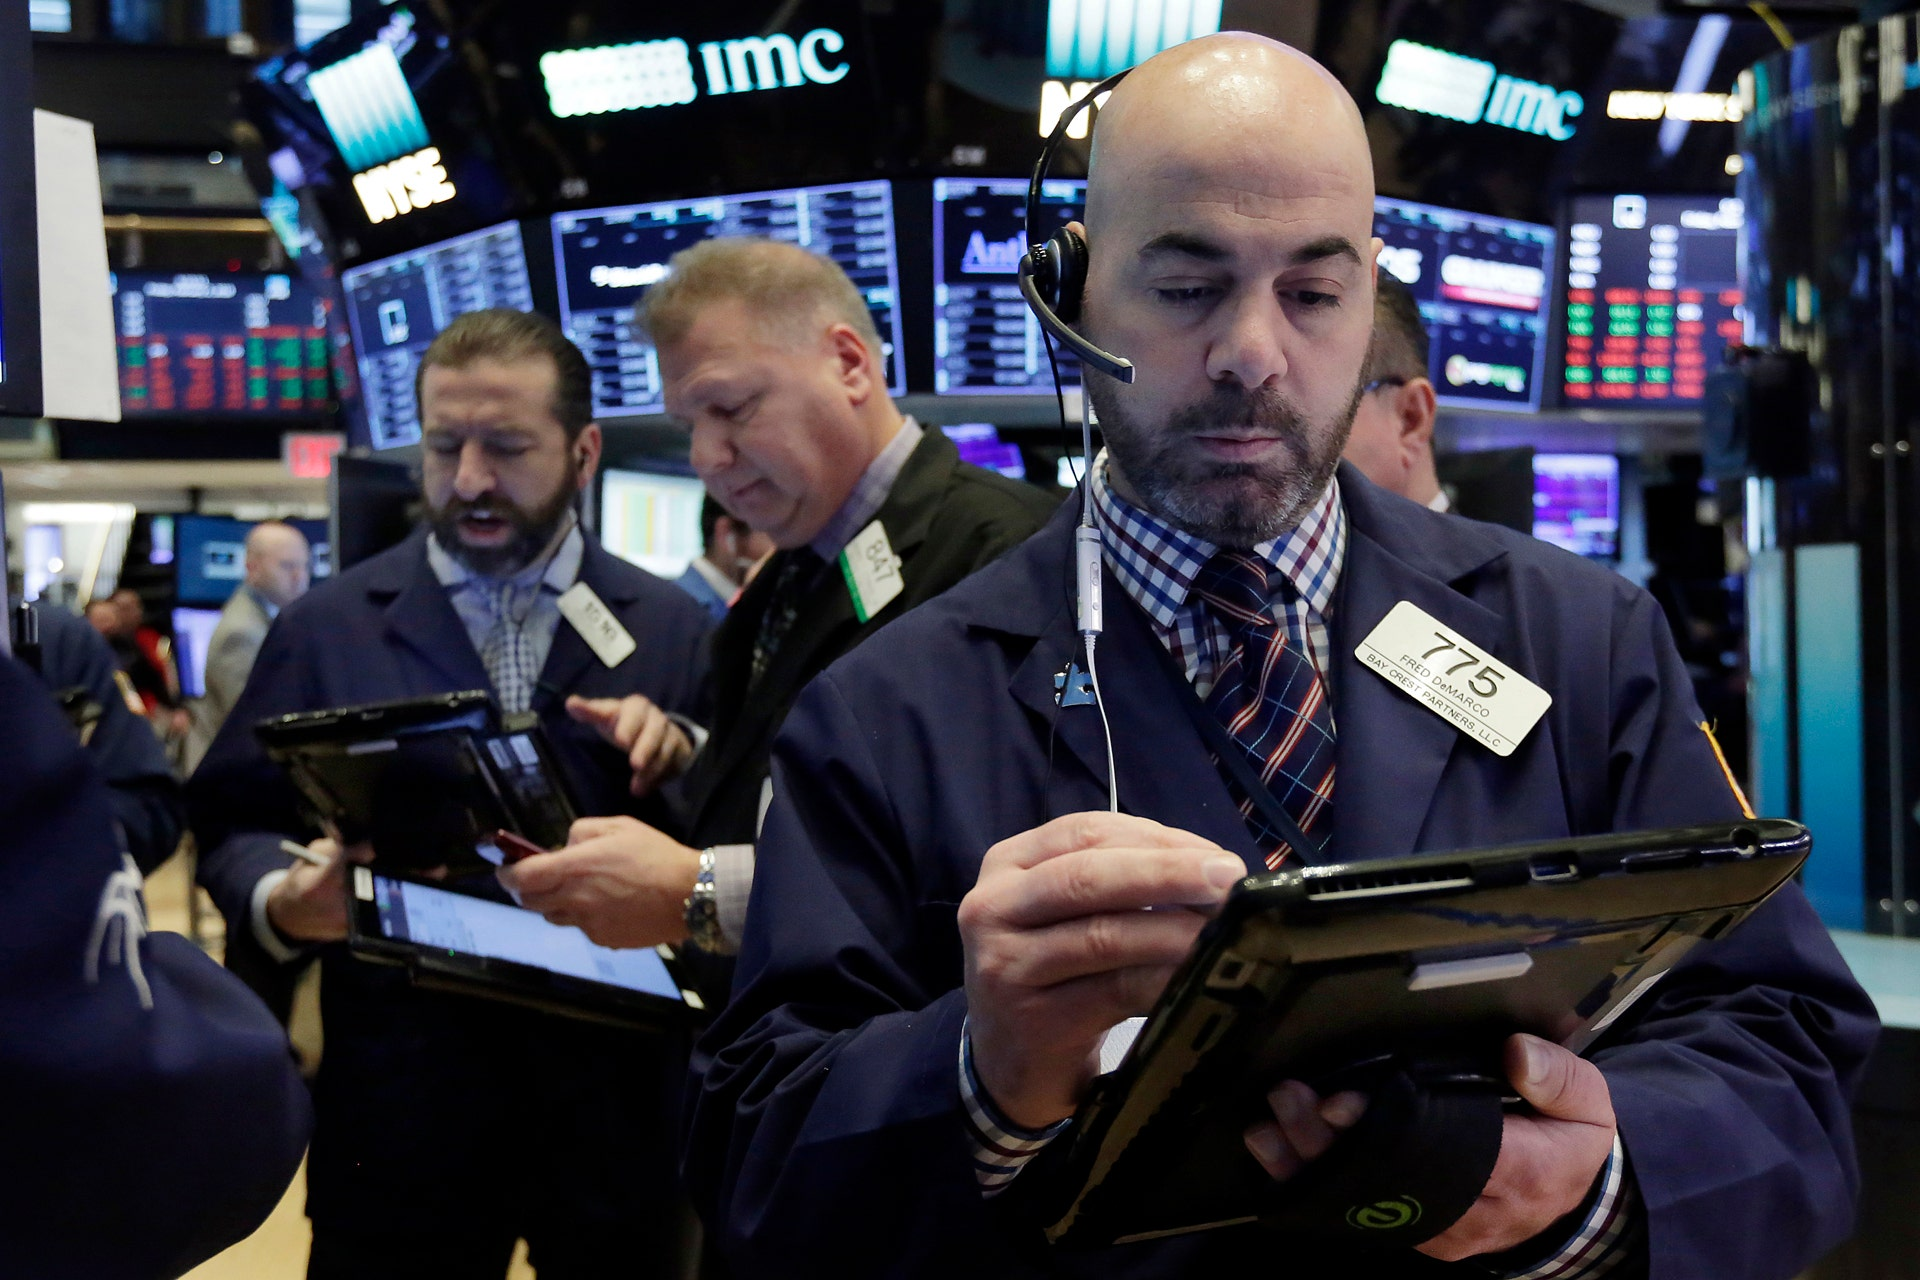 Stock futures pause after Dow hits record - Fox Business